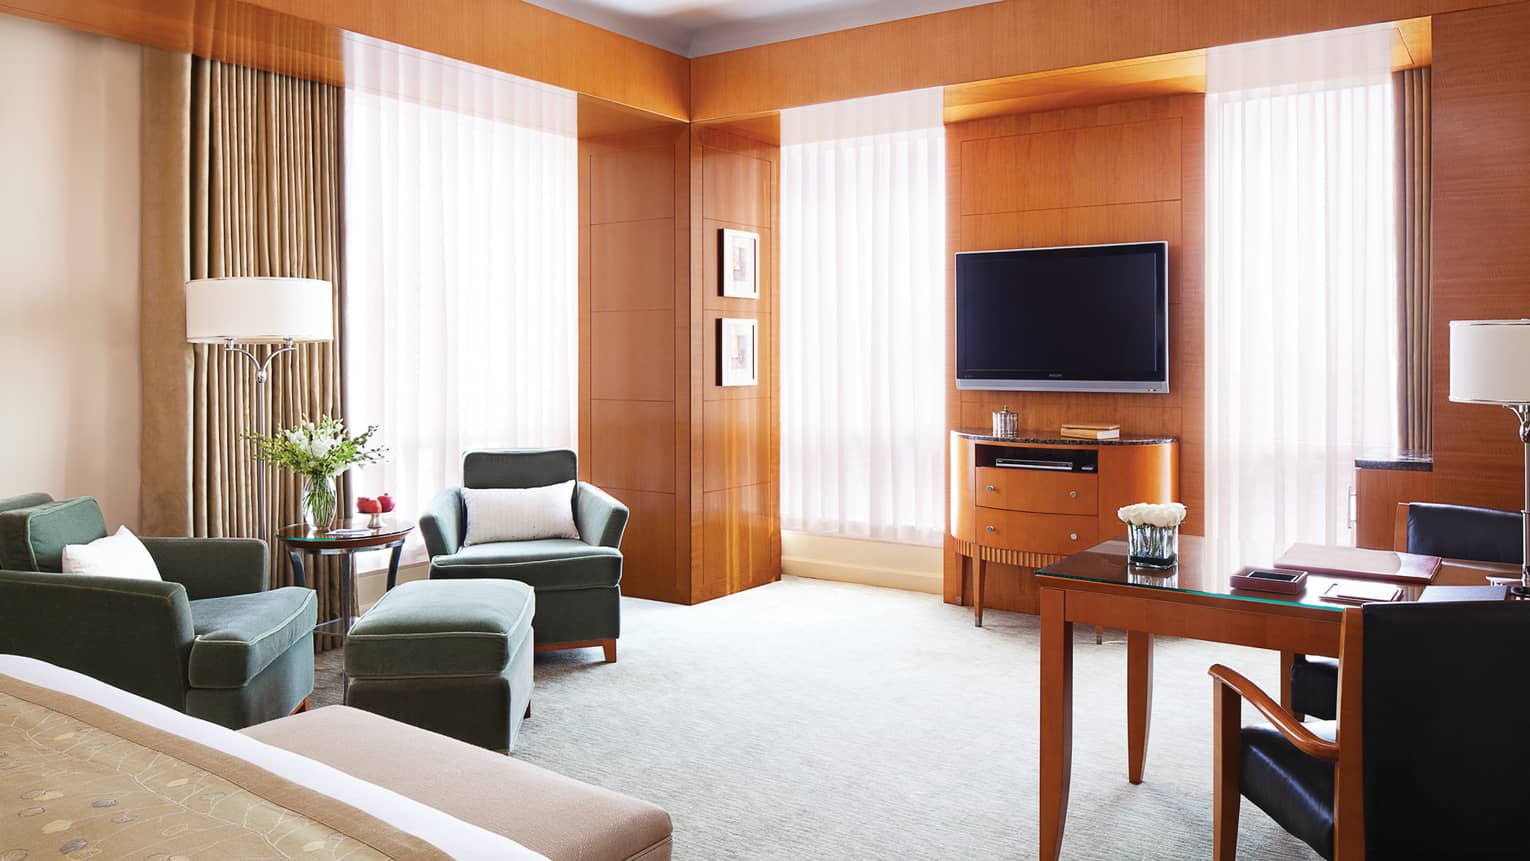 Executive Premier Room wood panel walls, sunny windows with sheer curtains, bed, TV, chairs